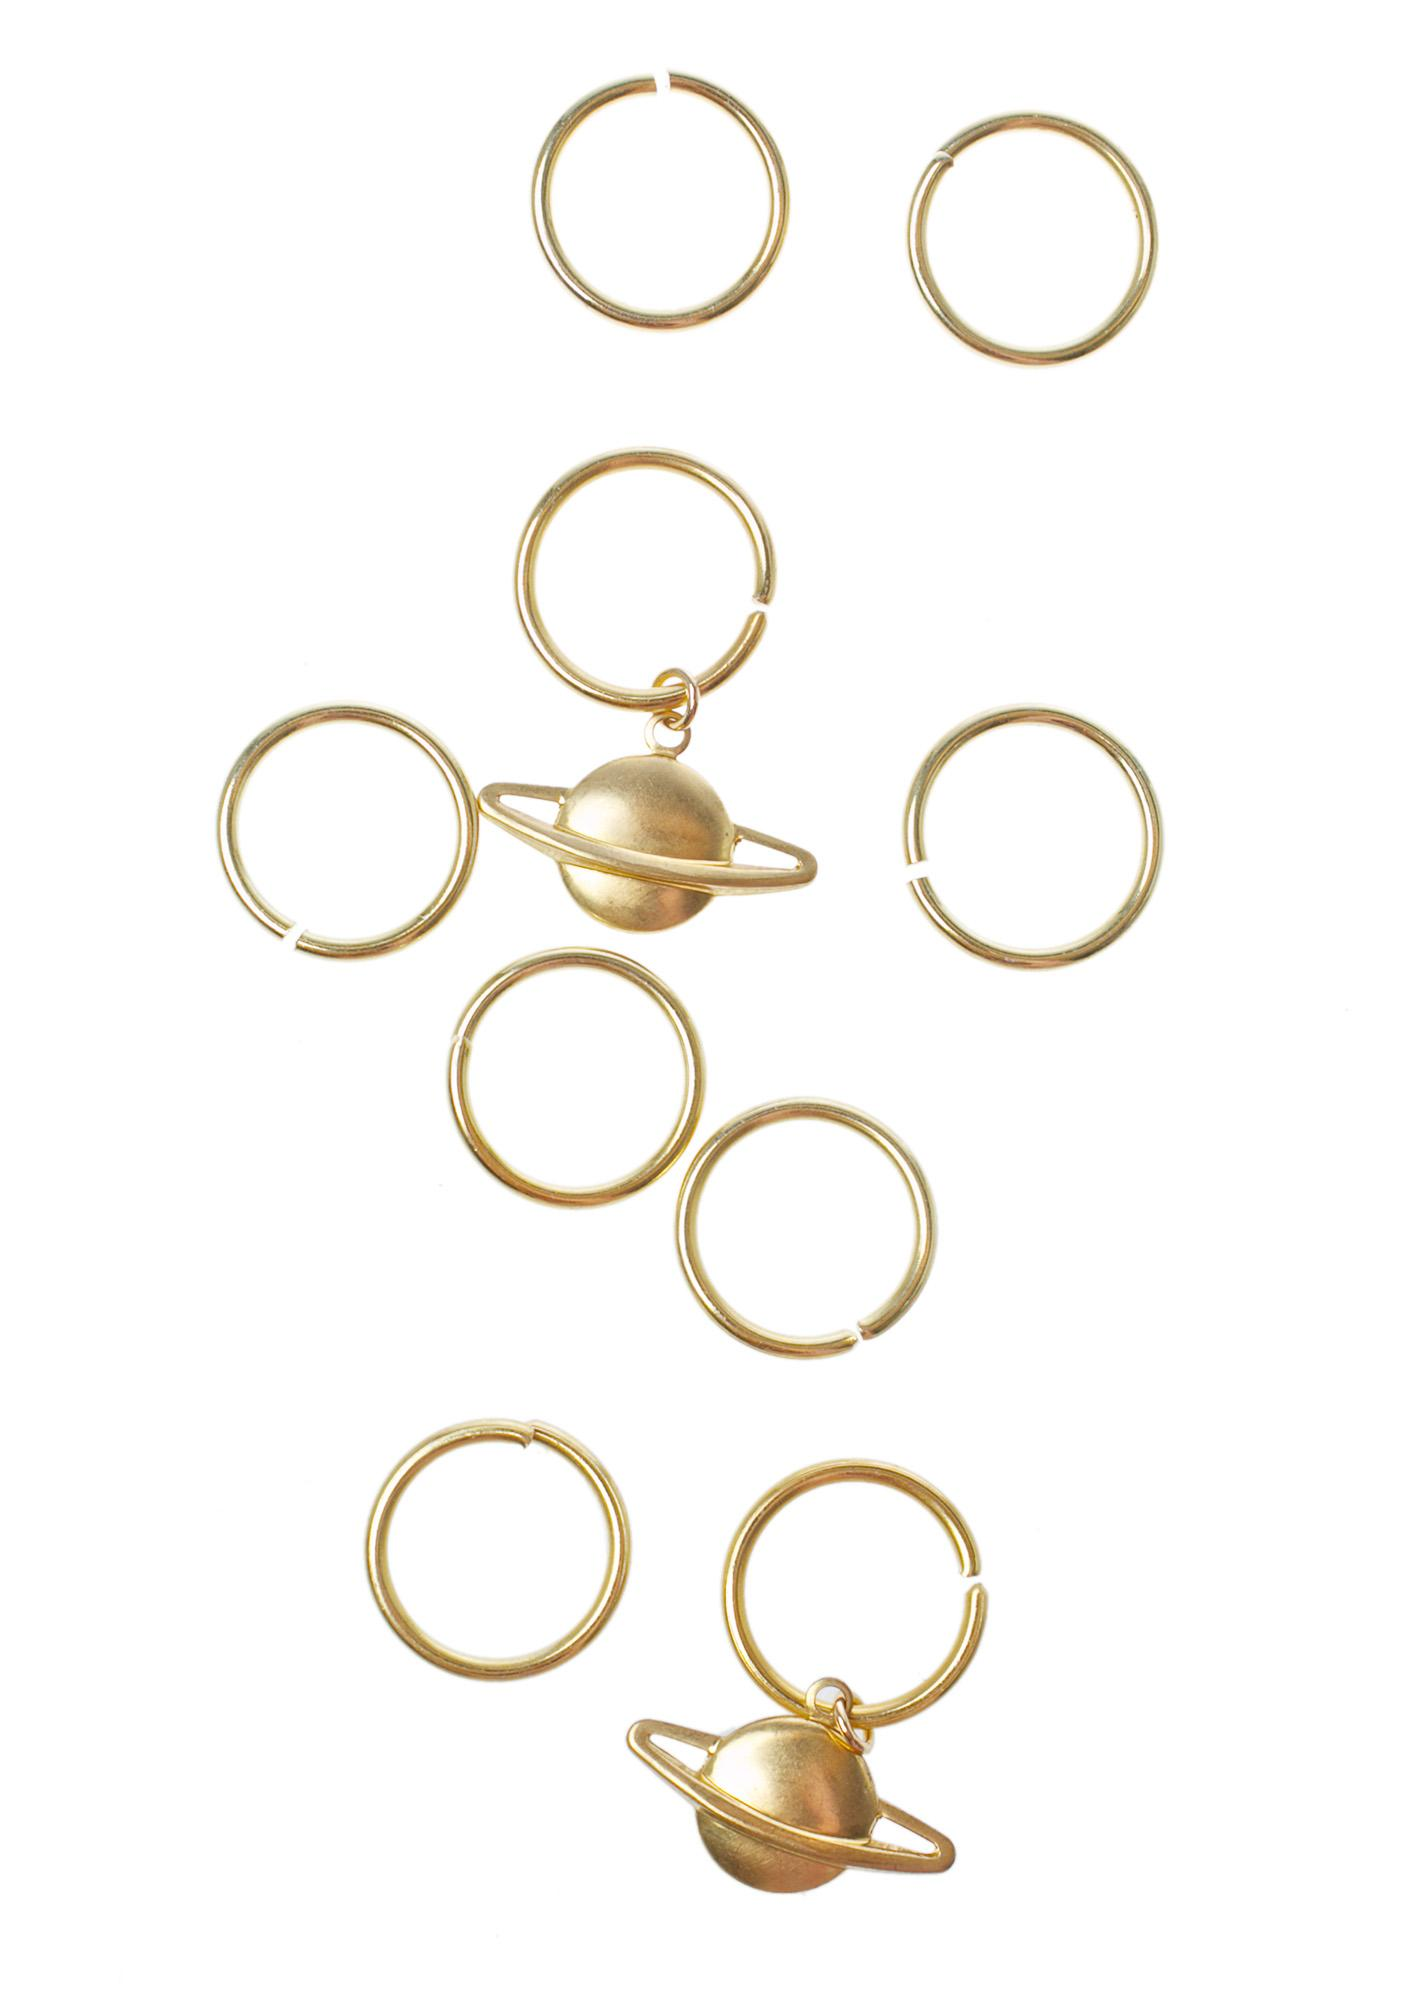 Regal Rose Planetary Aeon Hair Rings